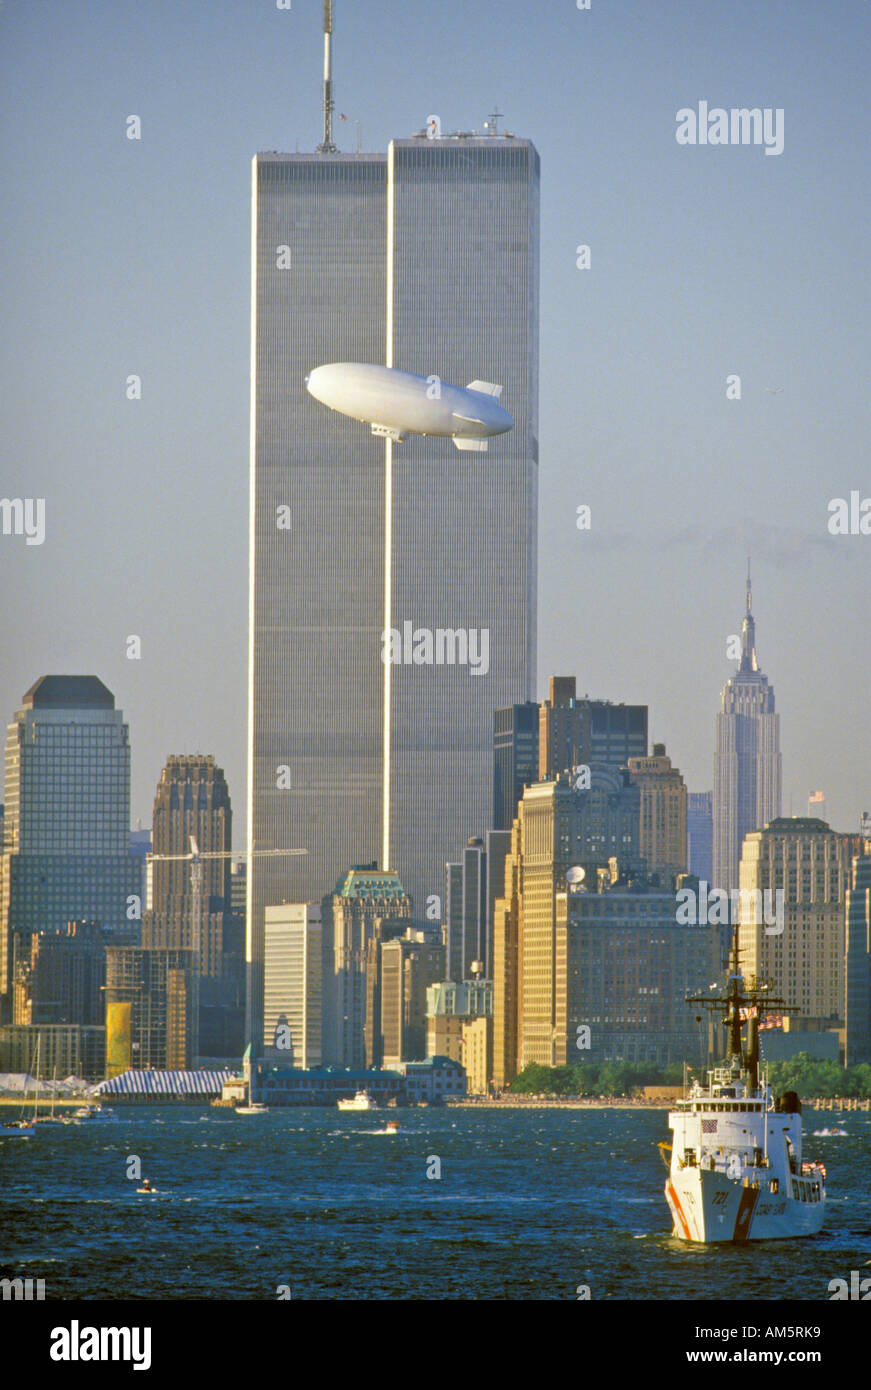 World Trade Towers with Good Year Blimp in foreground New York City NY - Stock Image